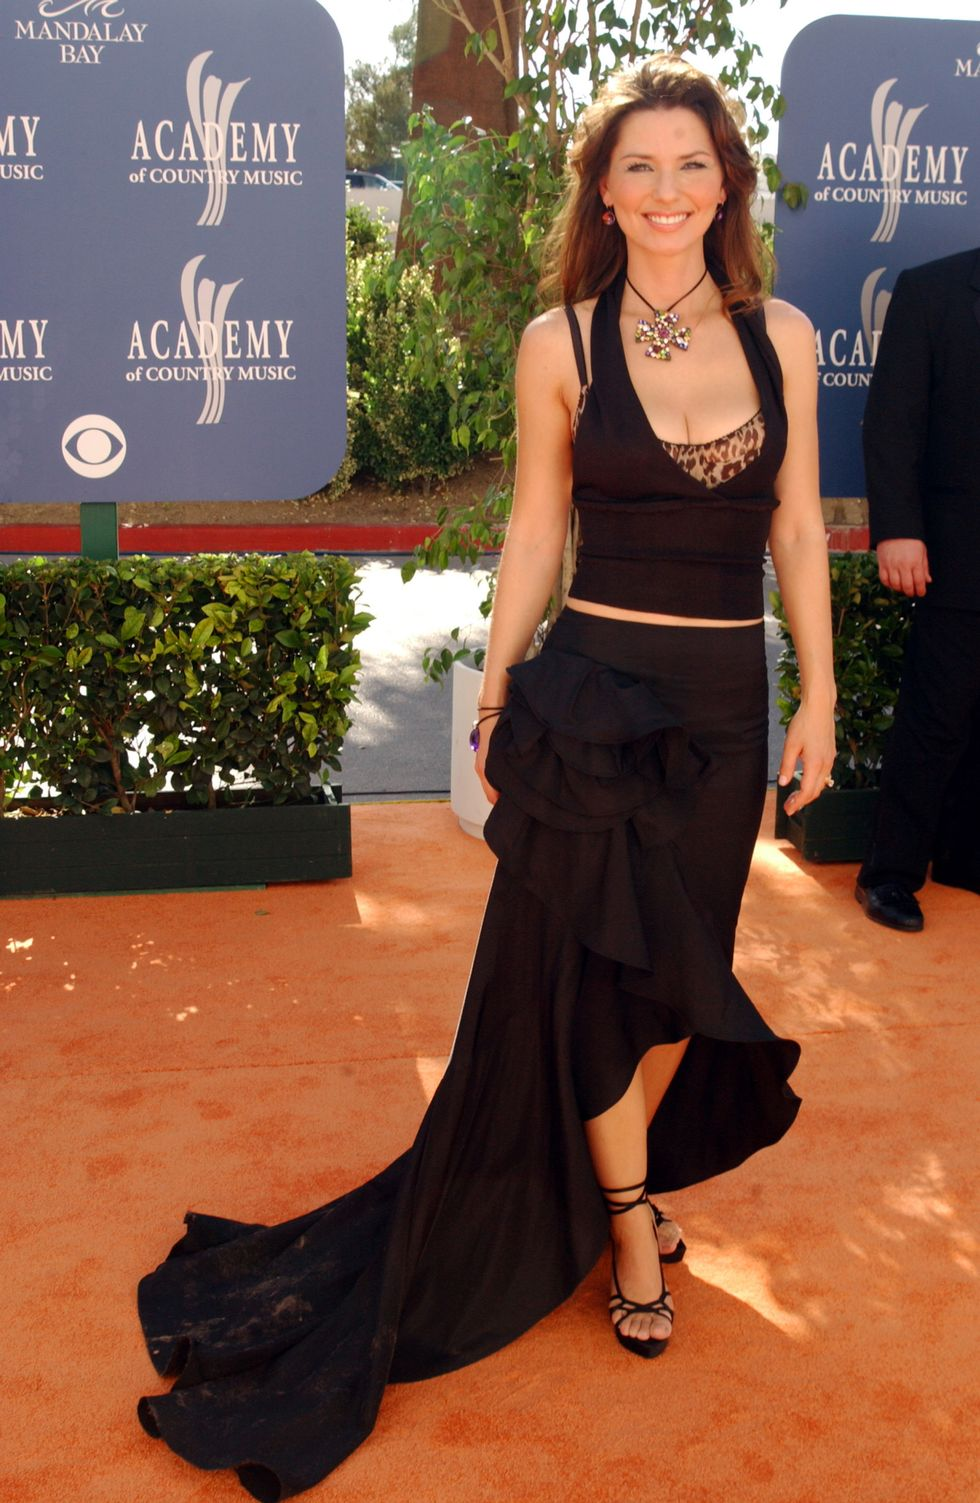 Shania Twain during 38th Annual Academy of Country Music Awards - Arrivals at Mandalay Bay Events Center in Las Vegas, Nevada, United States. (Photo by Bill Davila/FilmMagic)